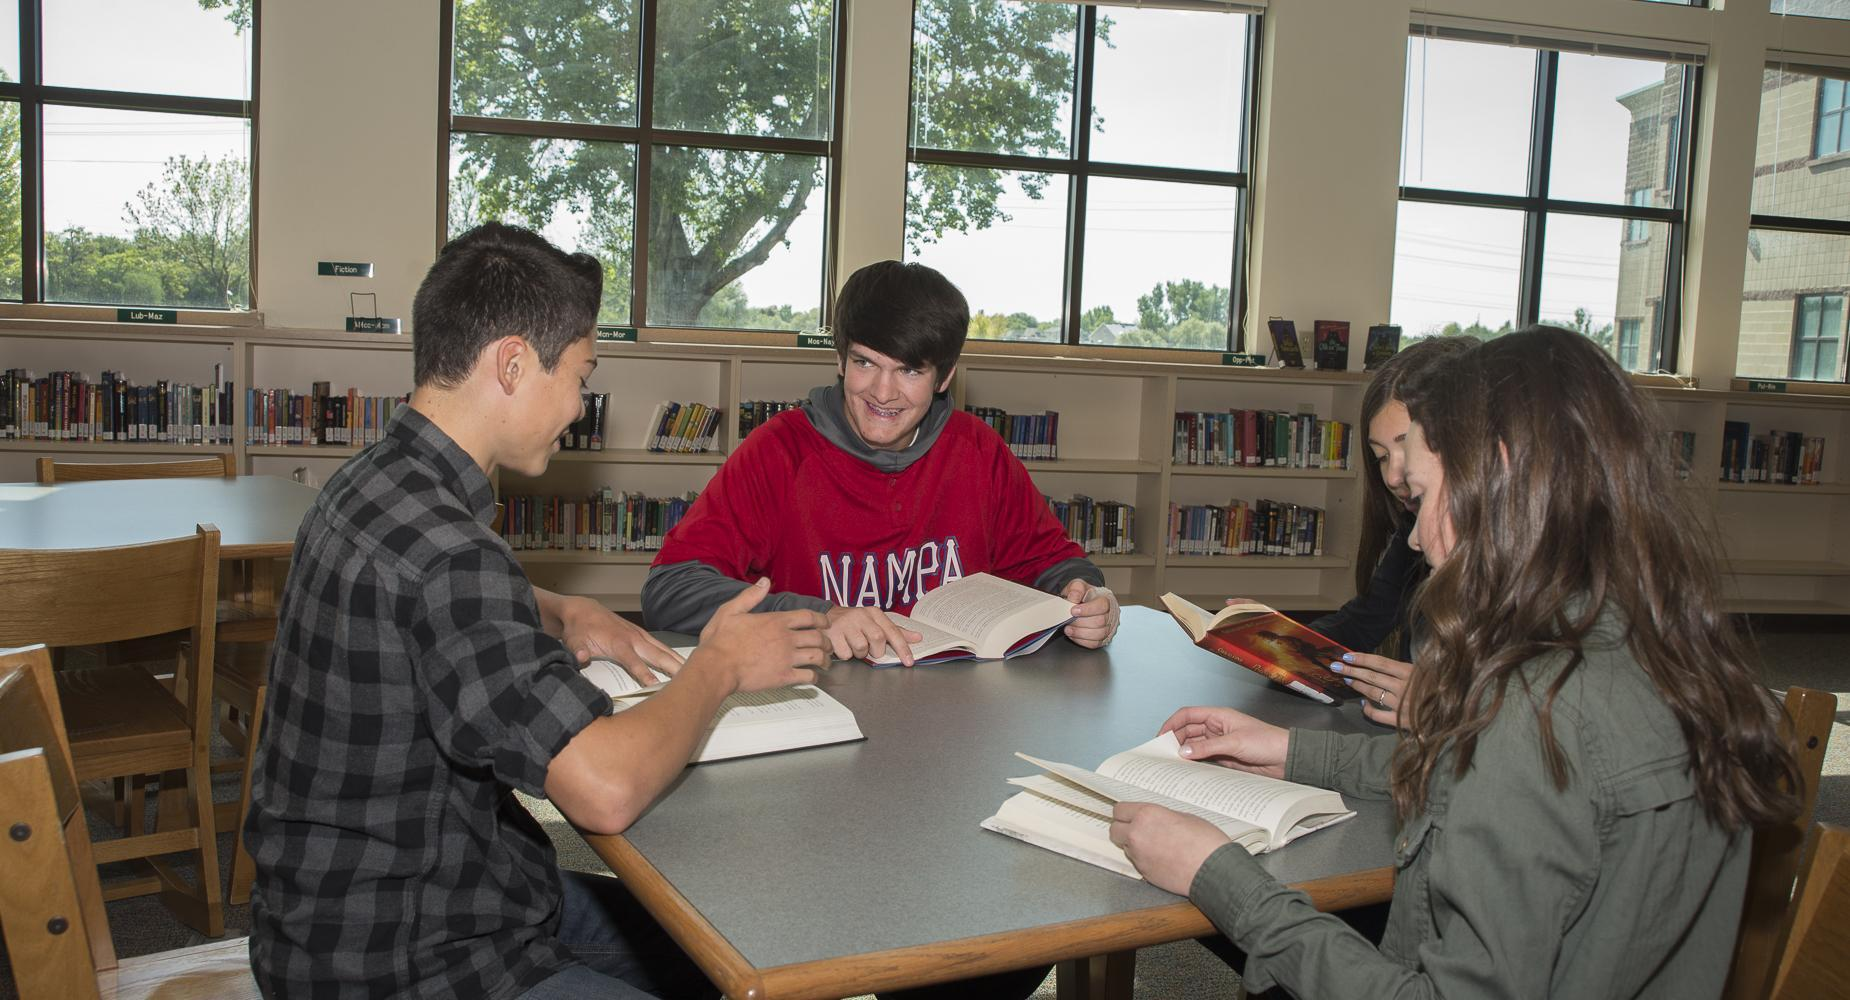 Students study at a table in the library